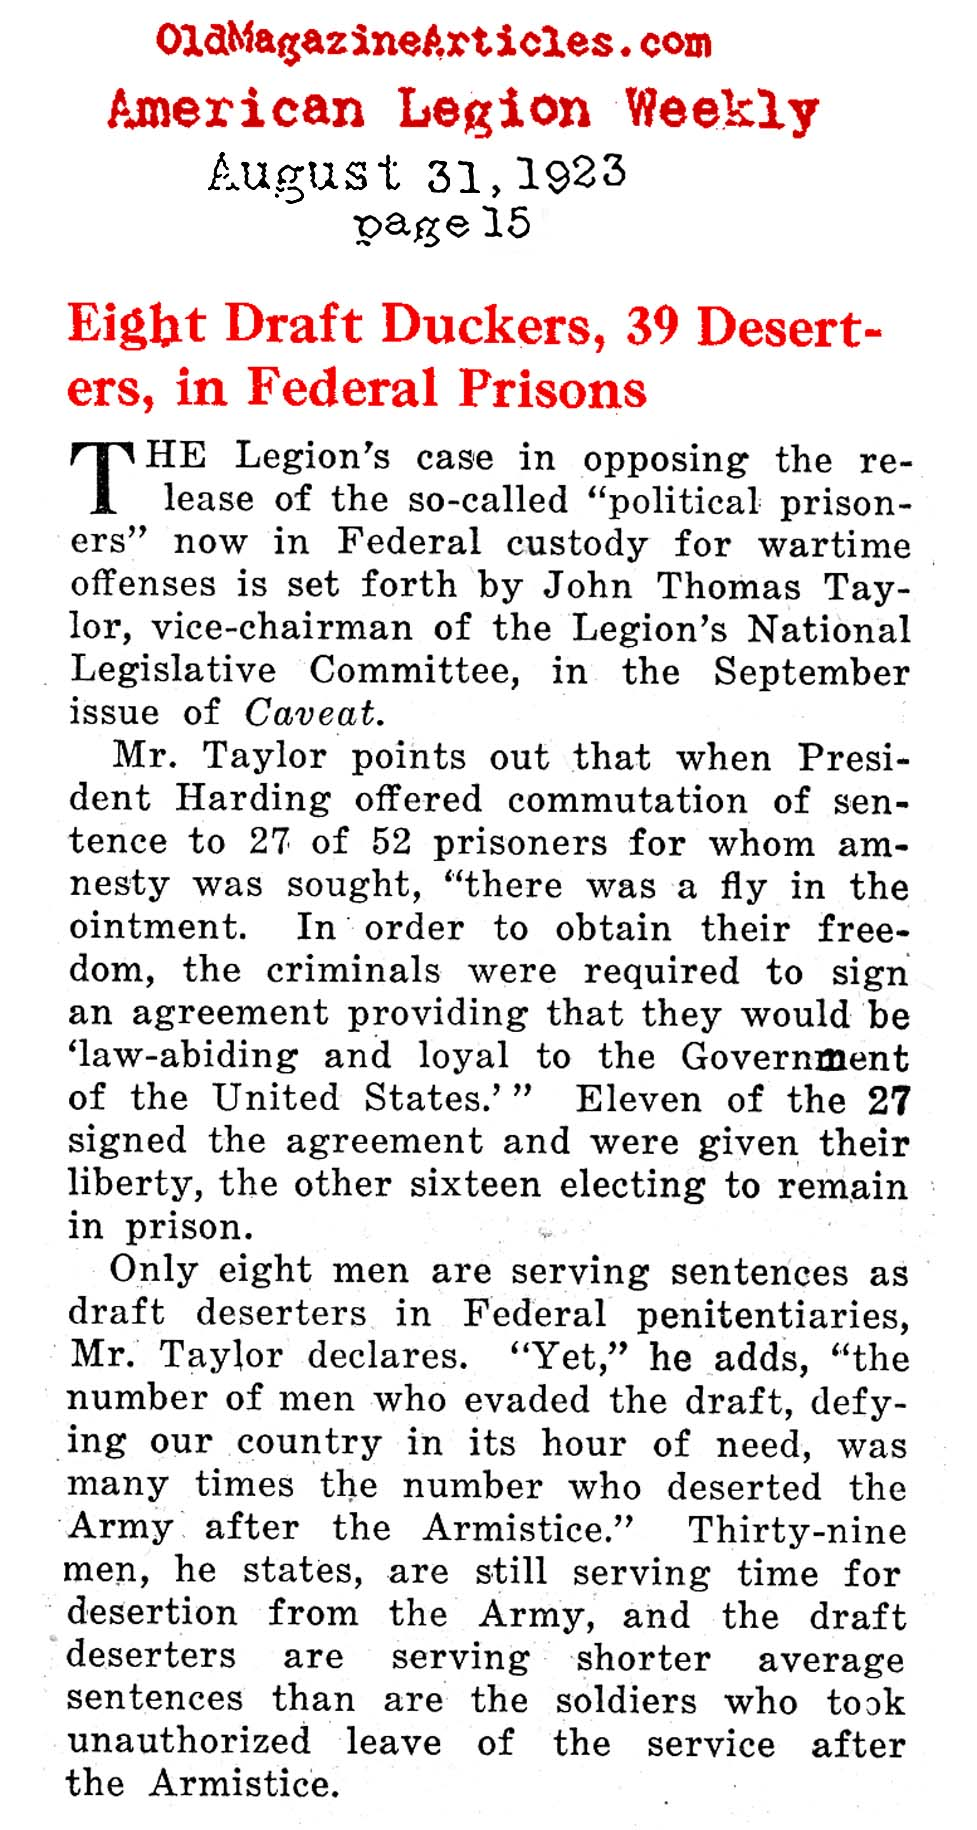 Draft-Dodgers and Deserters in Federal Prison (American Legion Weekly, 1923)